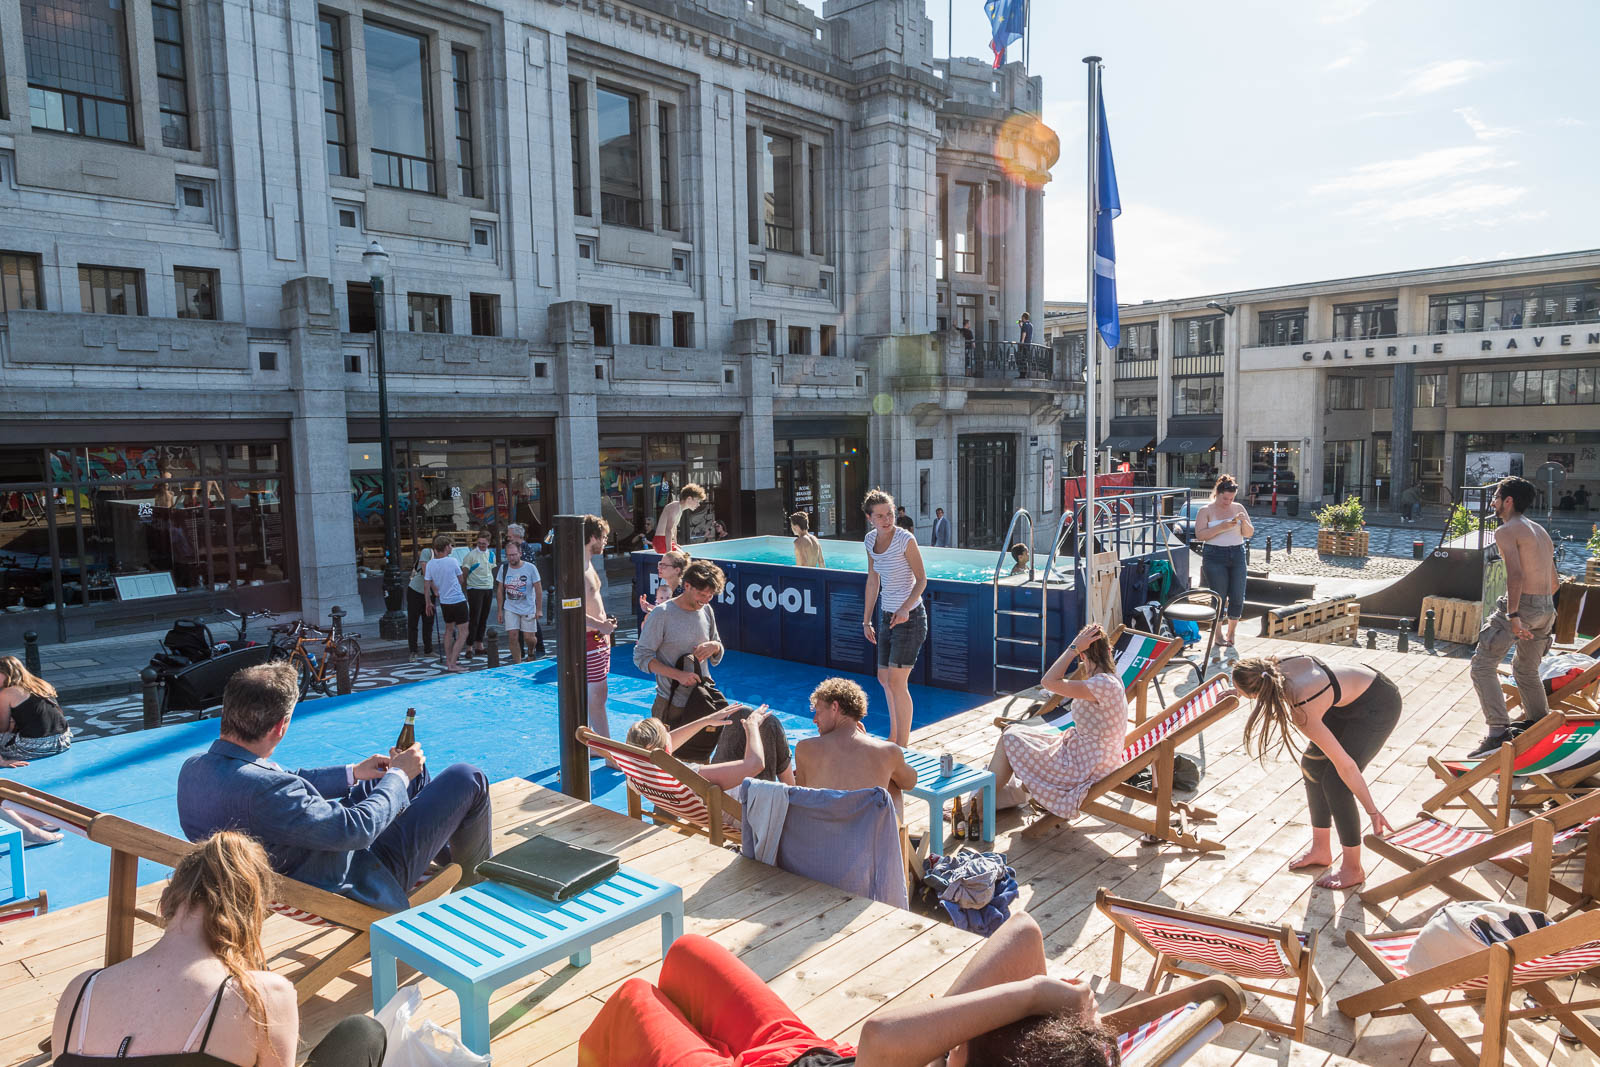 THE BIGGEST PUBLIC OUTDOOR POOL IN BRUSSELS - installation with pool, sun decks and bar in the city centre of Brussels - 2017